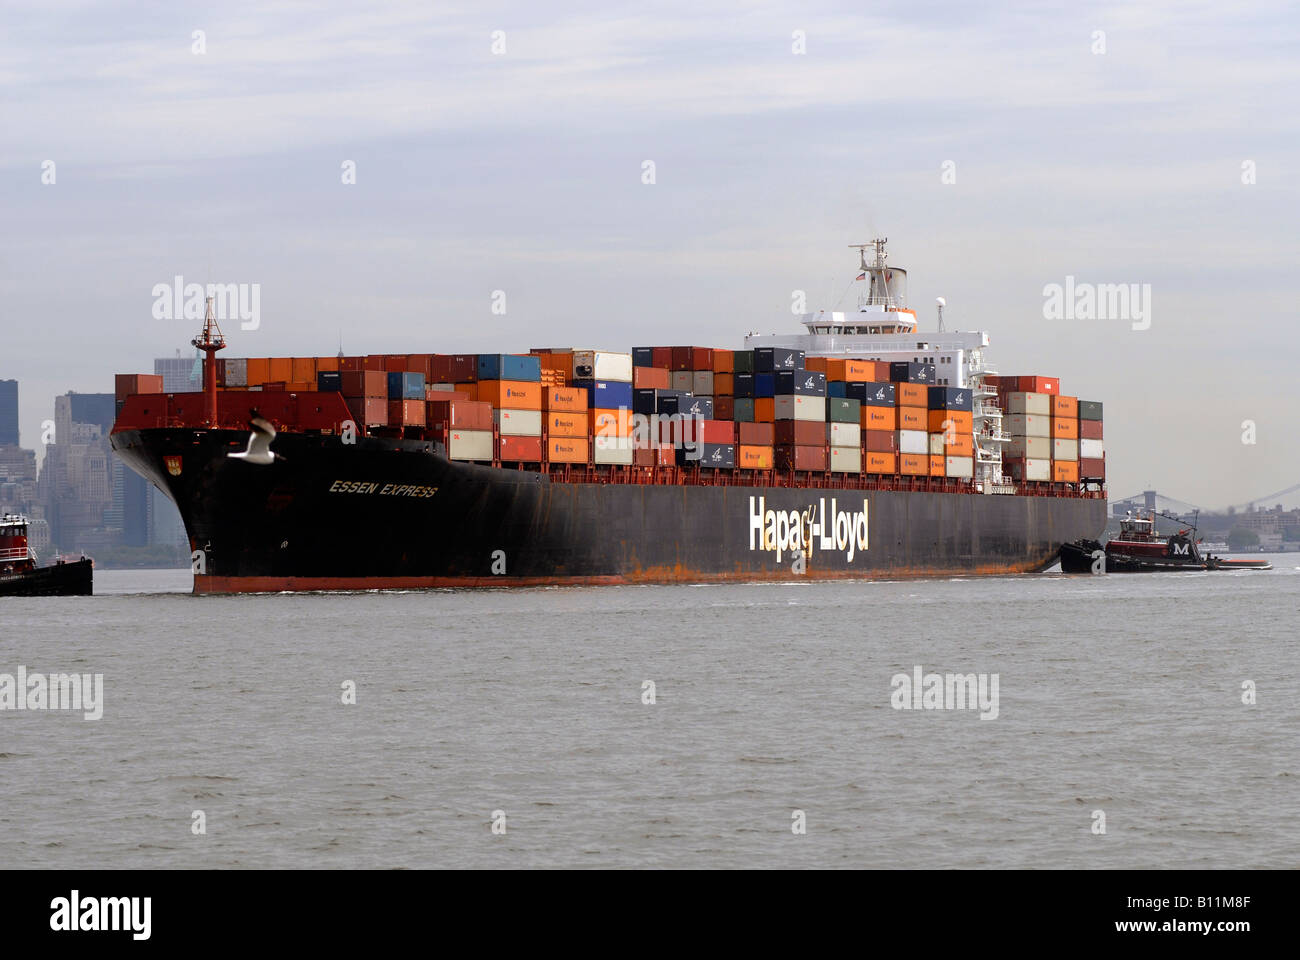 The Essen Express of the Hapag Lloyd line leaves port on the Hudson River North River in New Jersey laden with containers - Stock Image